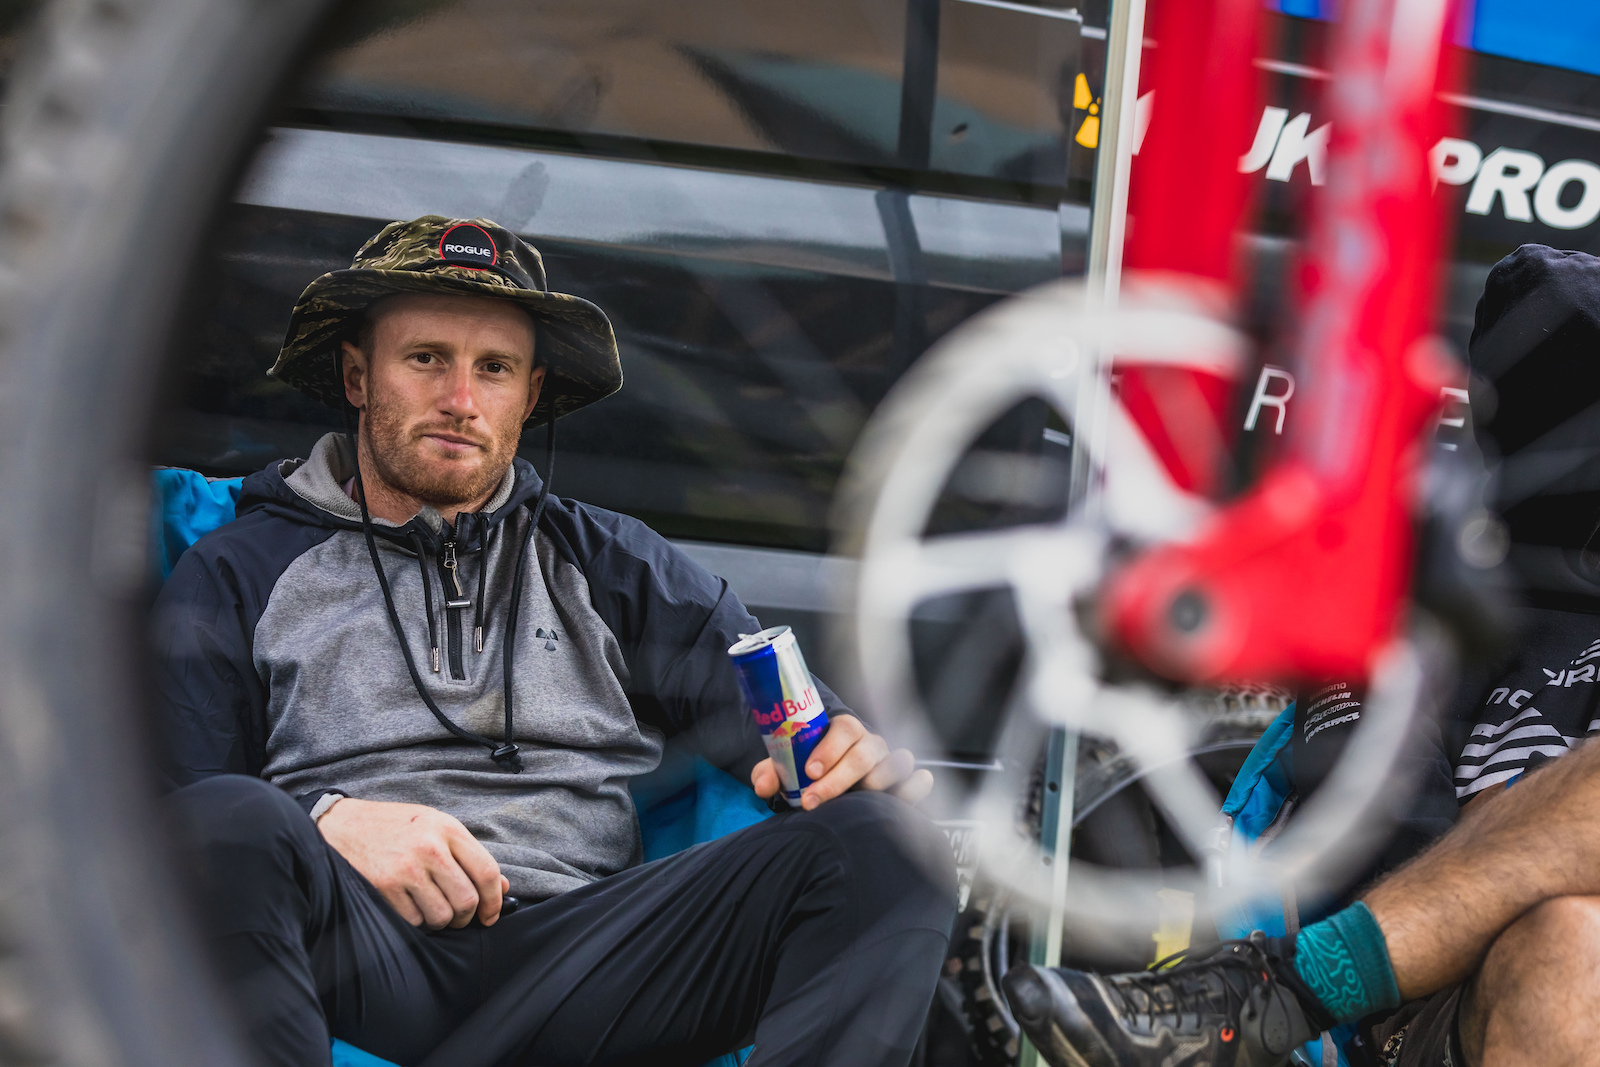 Adam Brayton Relaxing in the Pit s a familuer site with the long wind delays today.